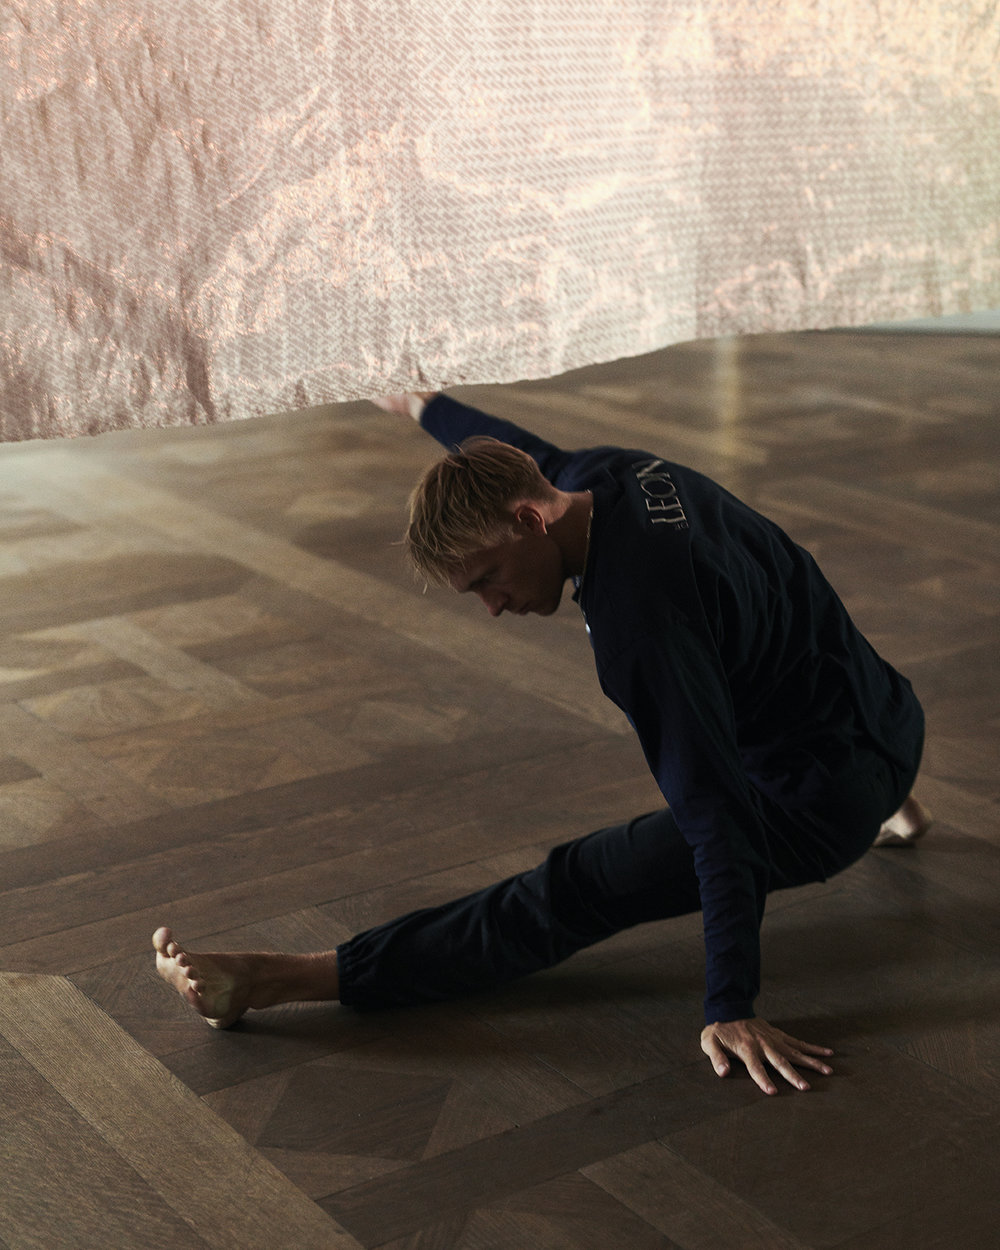 Pearla Pigao,  Sinus X DèleonCompany, 2018,  Performance for CHART, Shown at Design museum Denmark. Photo: Christian Hoyer.